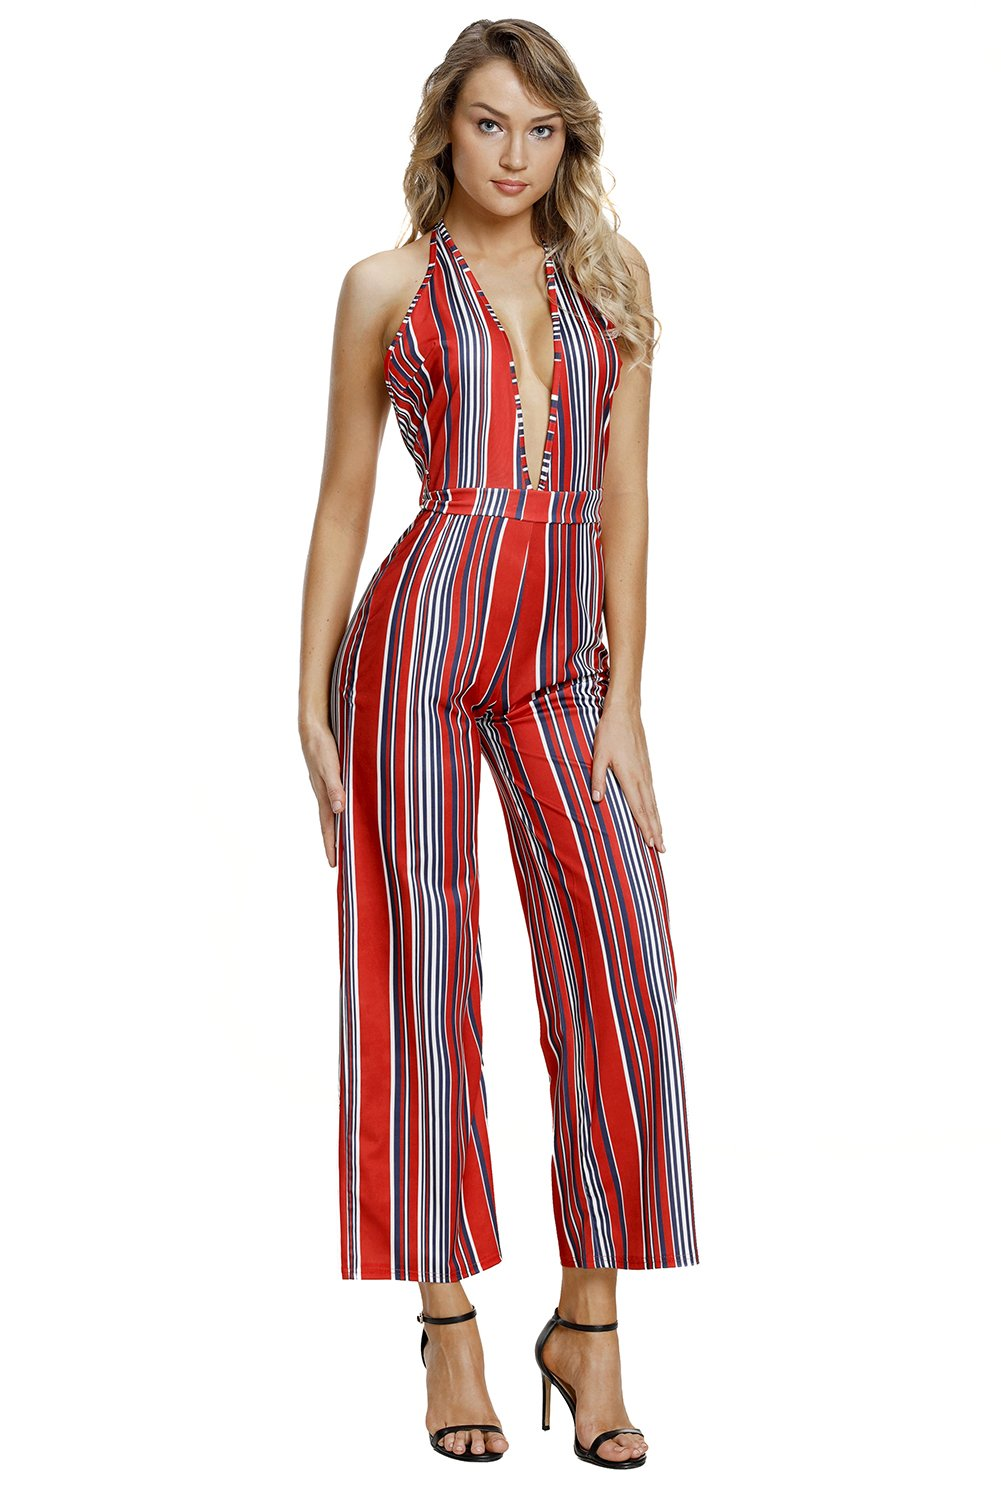 LittleLittleSky Women's Sexy Striped Deep V Neck Halter Open Back Wide Leg Jumpsuits Rompers ((US 4-6) S, Navy Red)